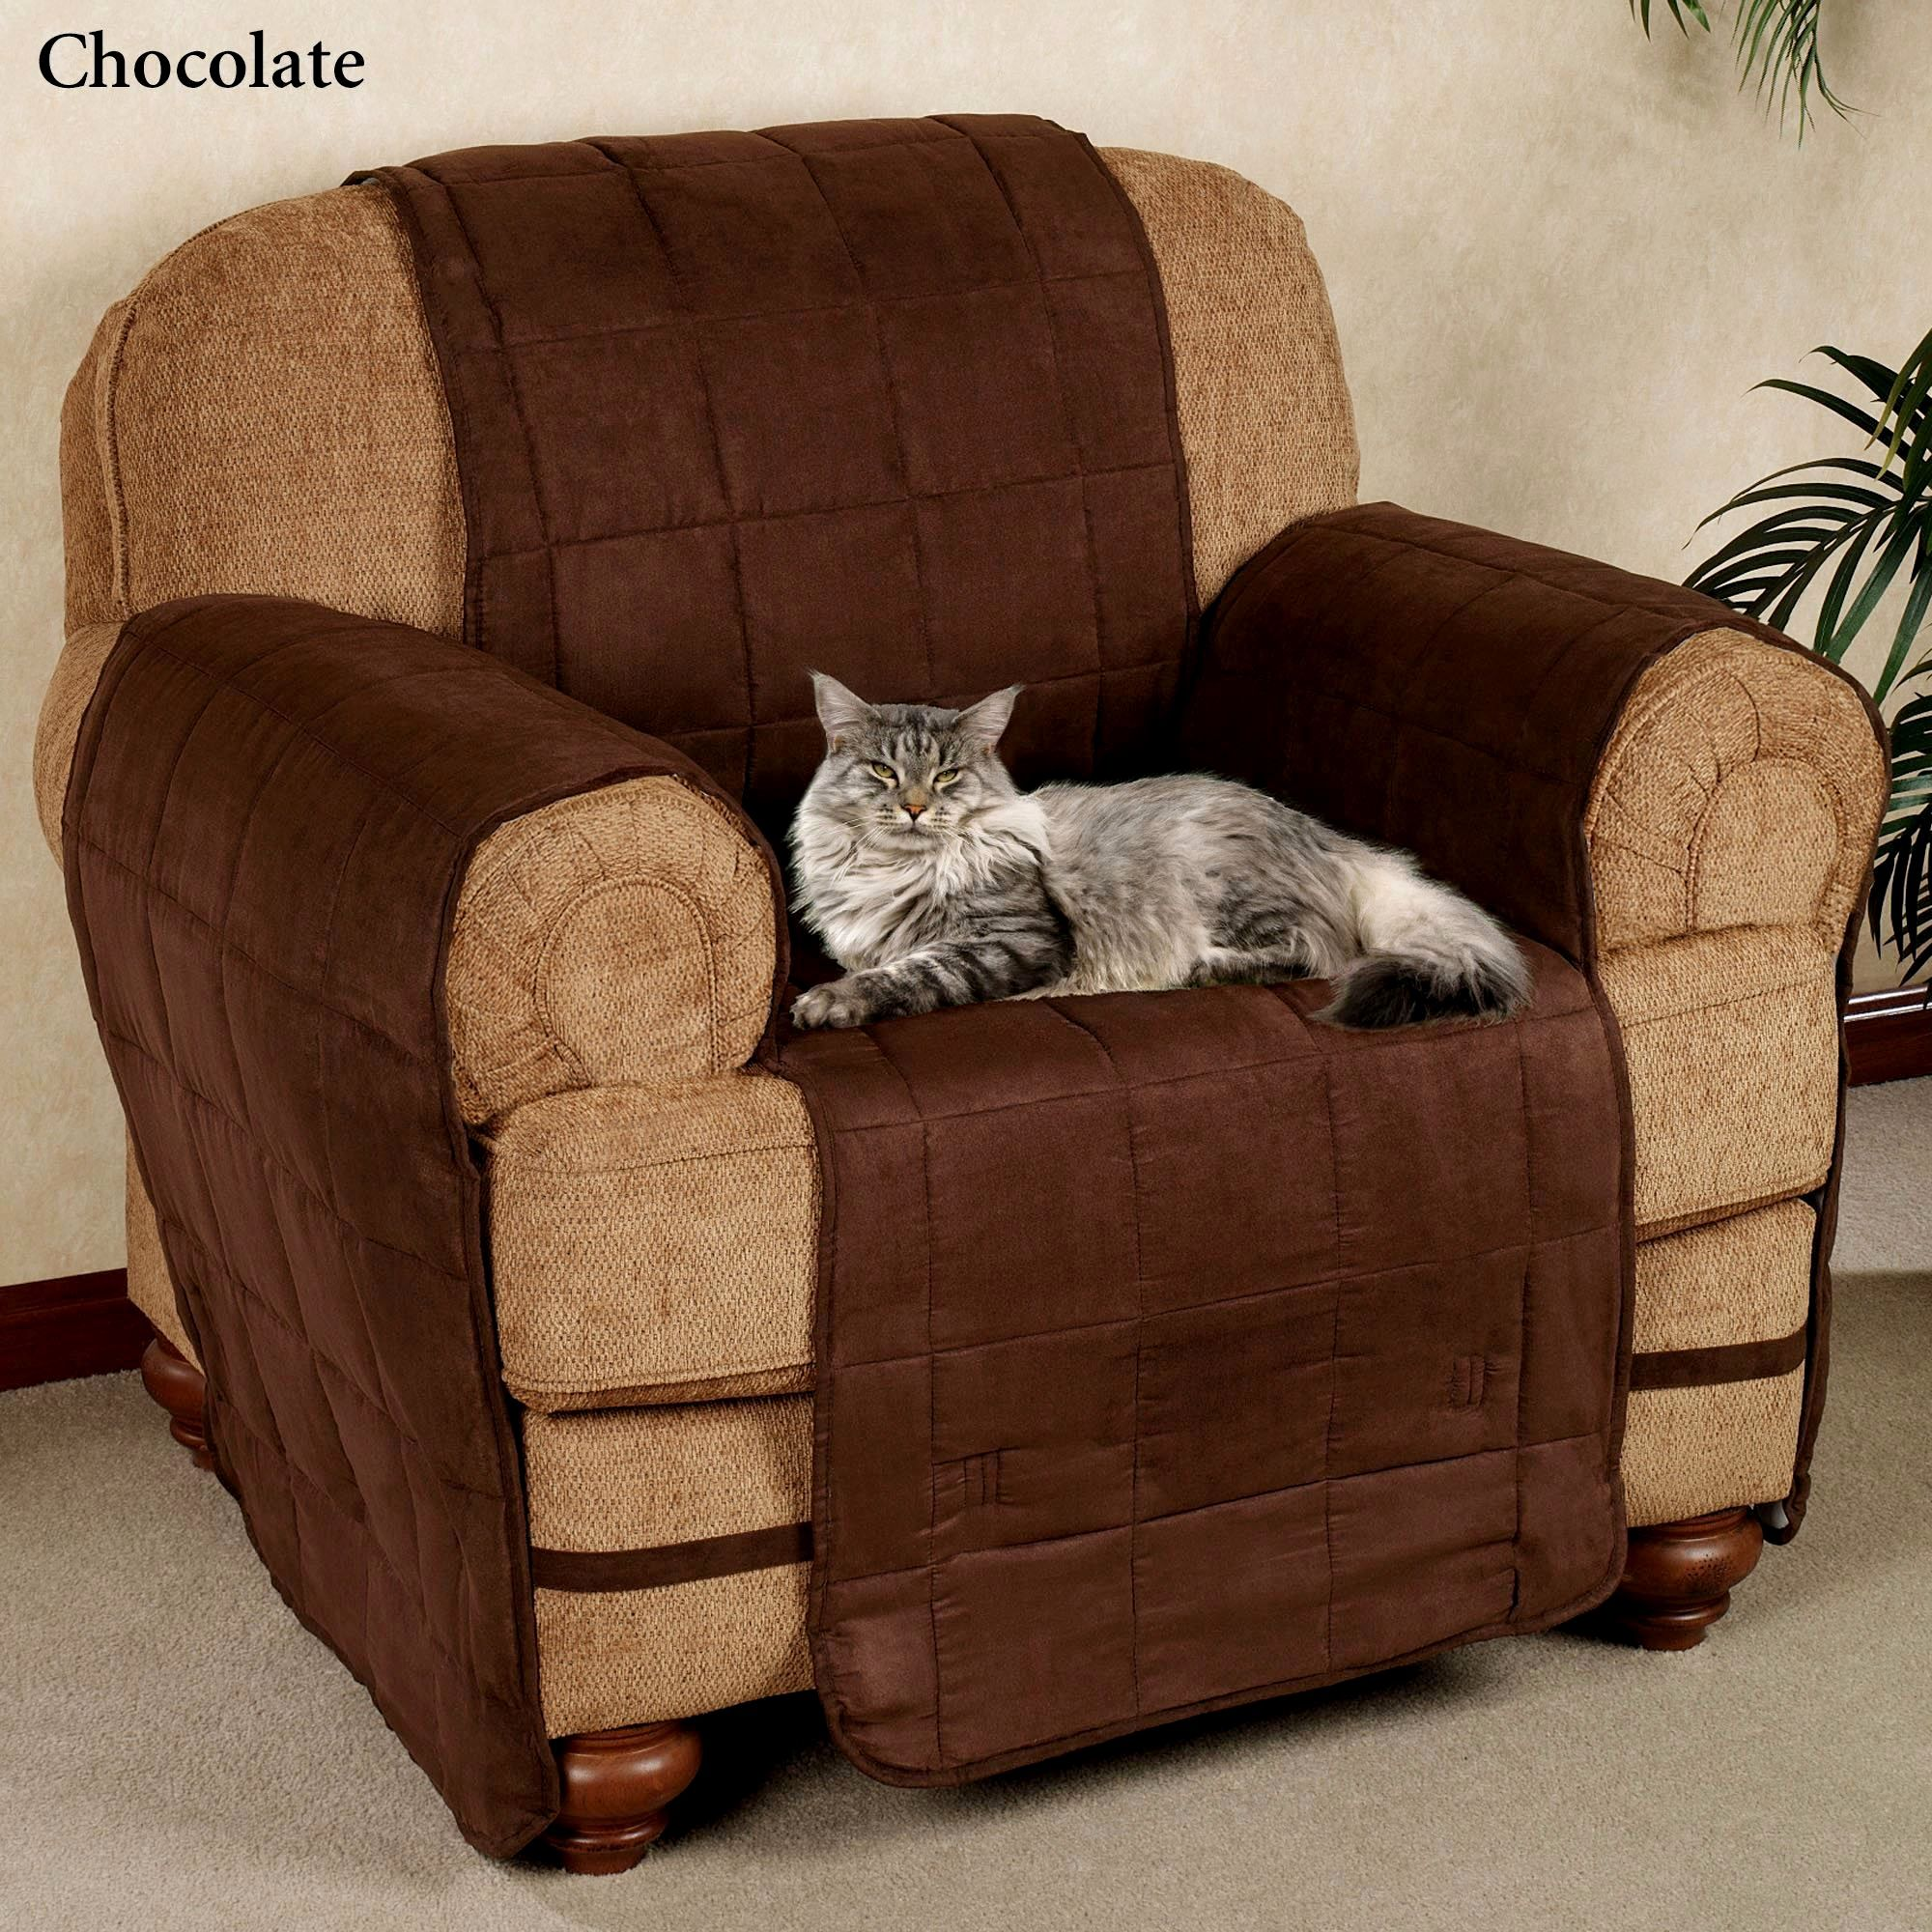 Idea Sofa Covers For Dogs Image Sofa Covers For Dogs Elegant Pet